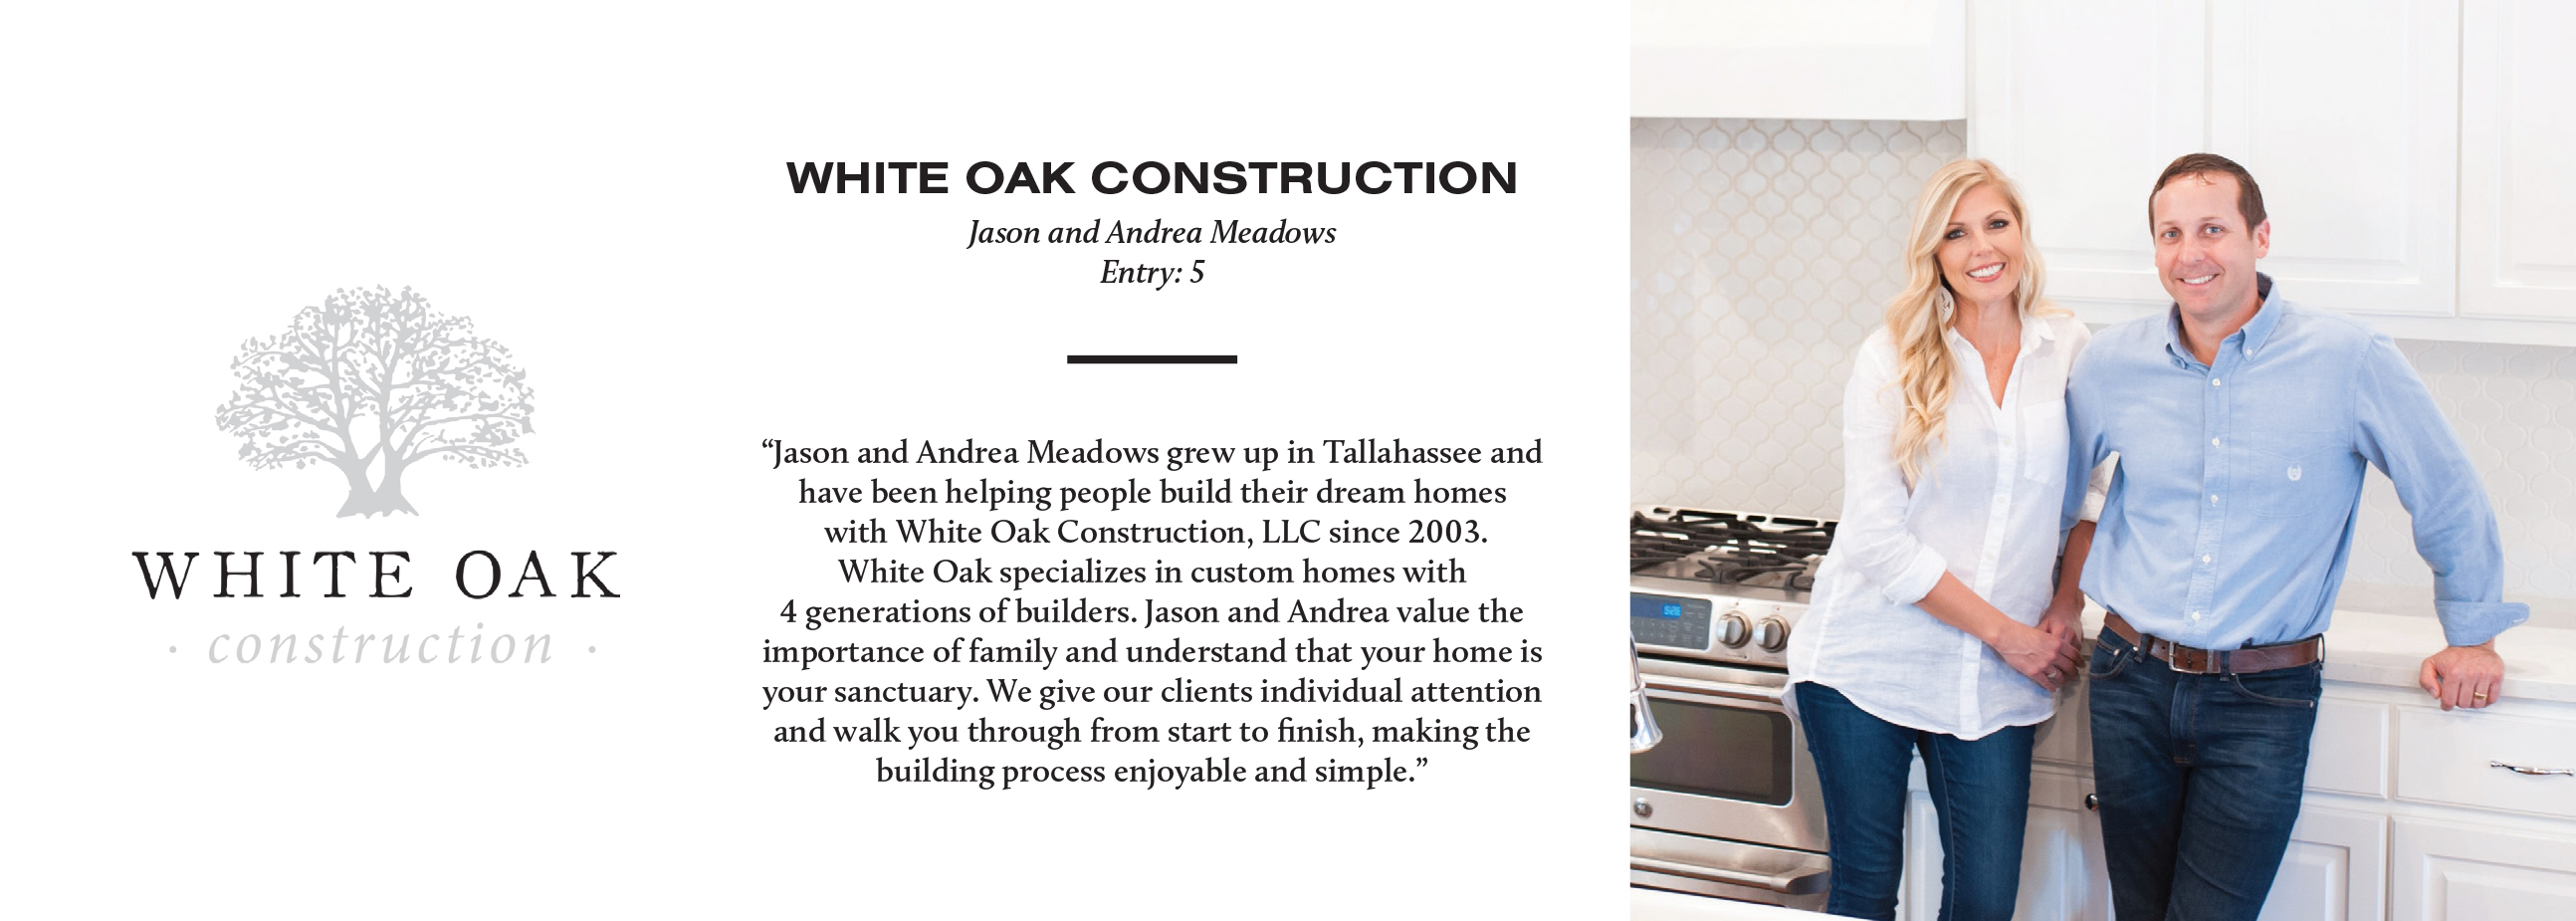 05_WhiteOakConstruction